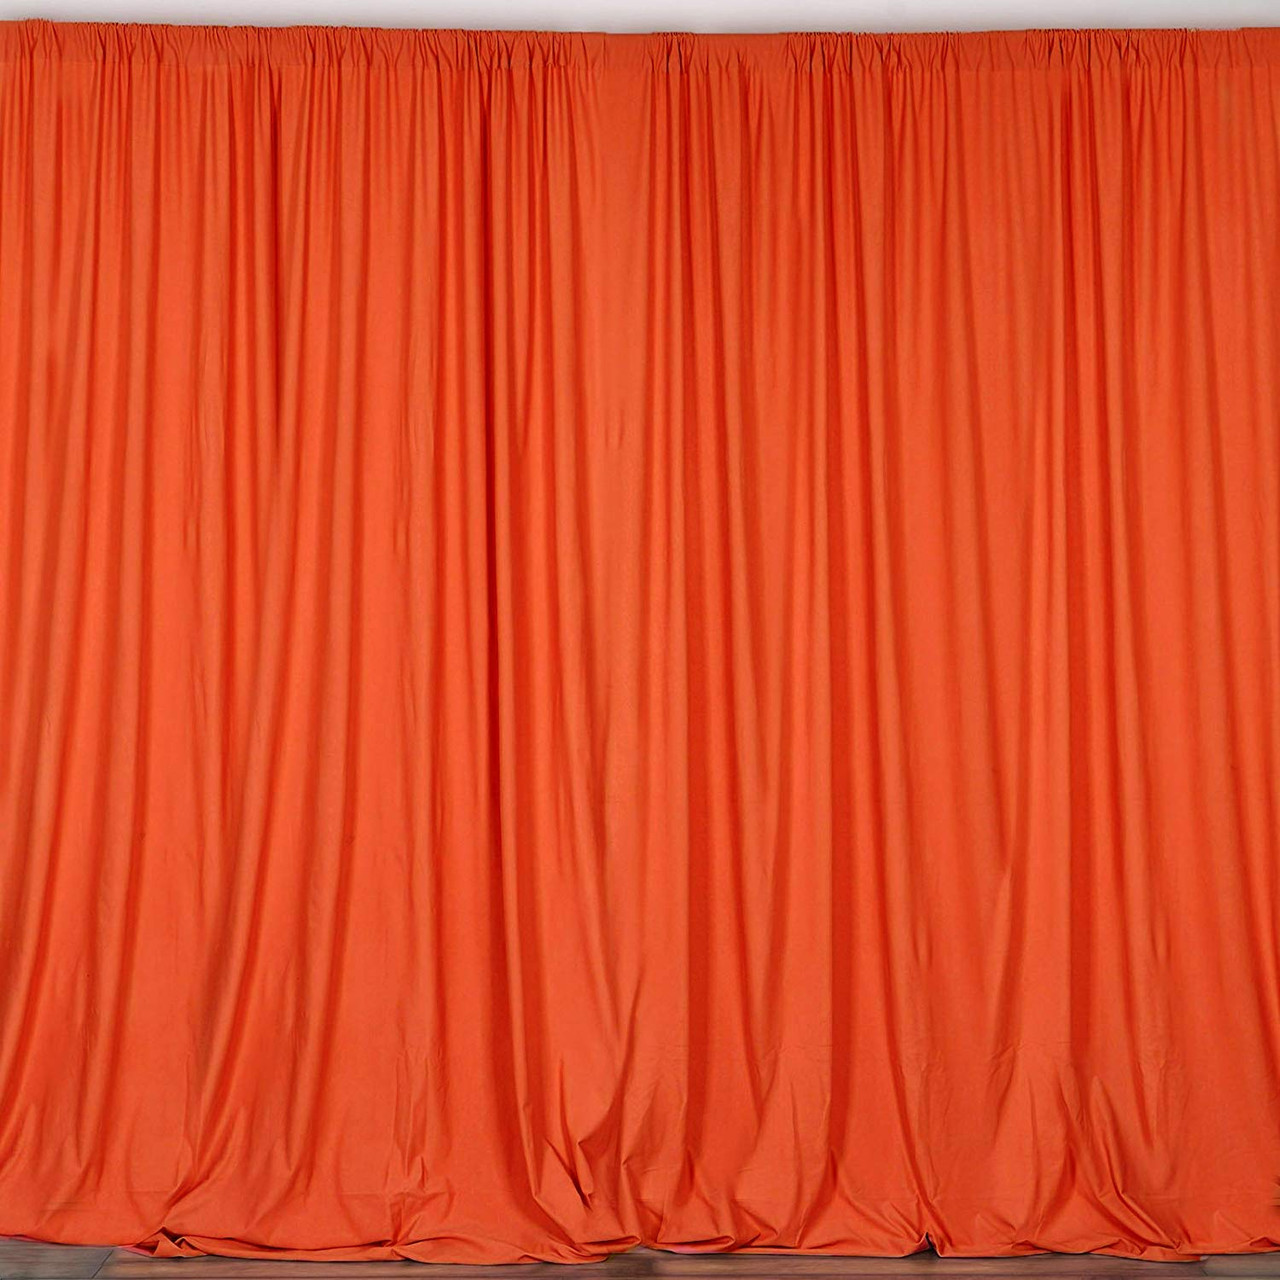 2 pack 10 feet polyester backdrop drapes curtains panels with rod pockets wedding ceremony party home window decorations orange